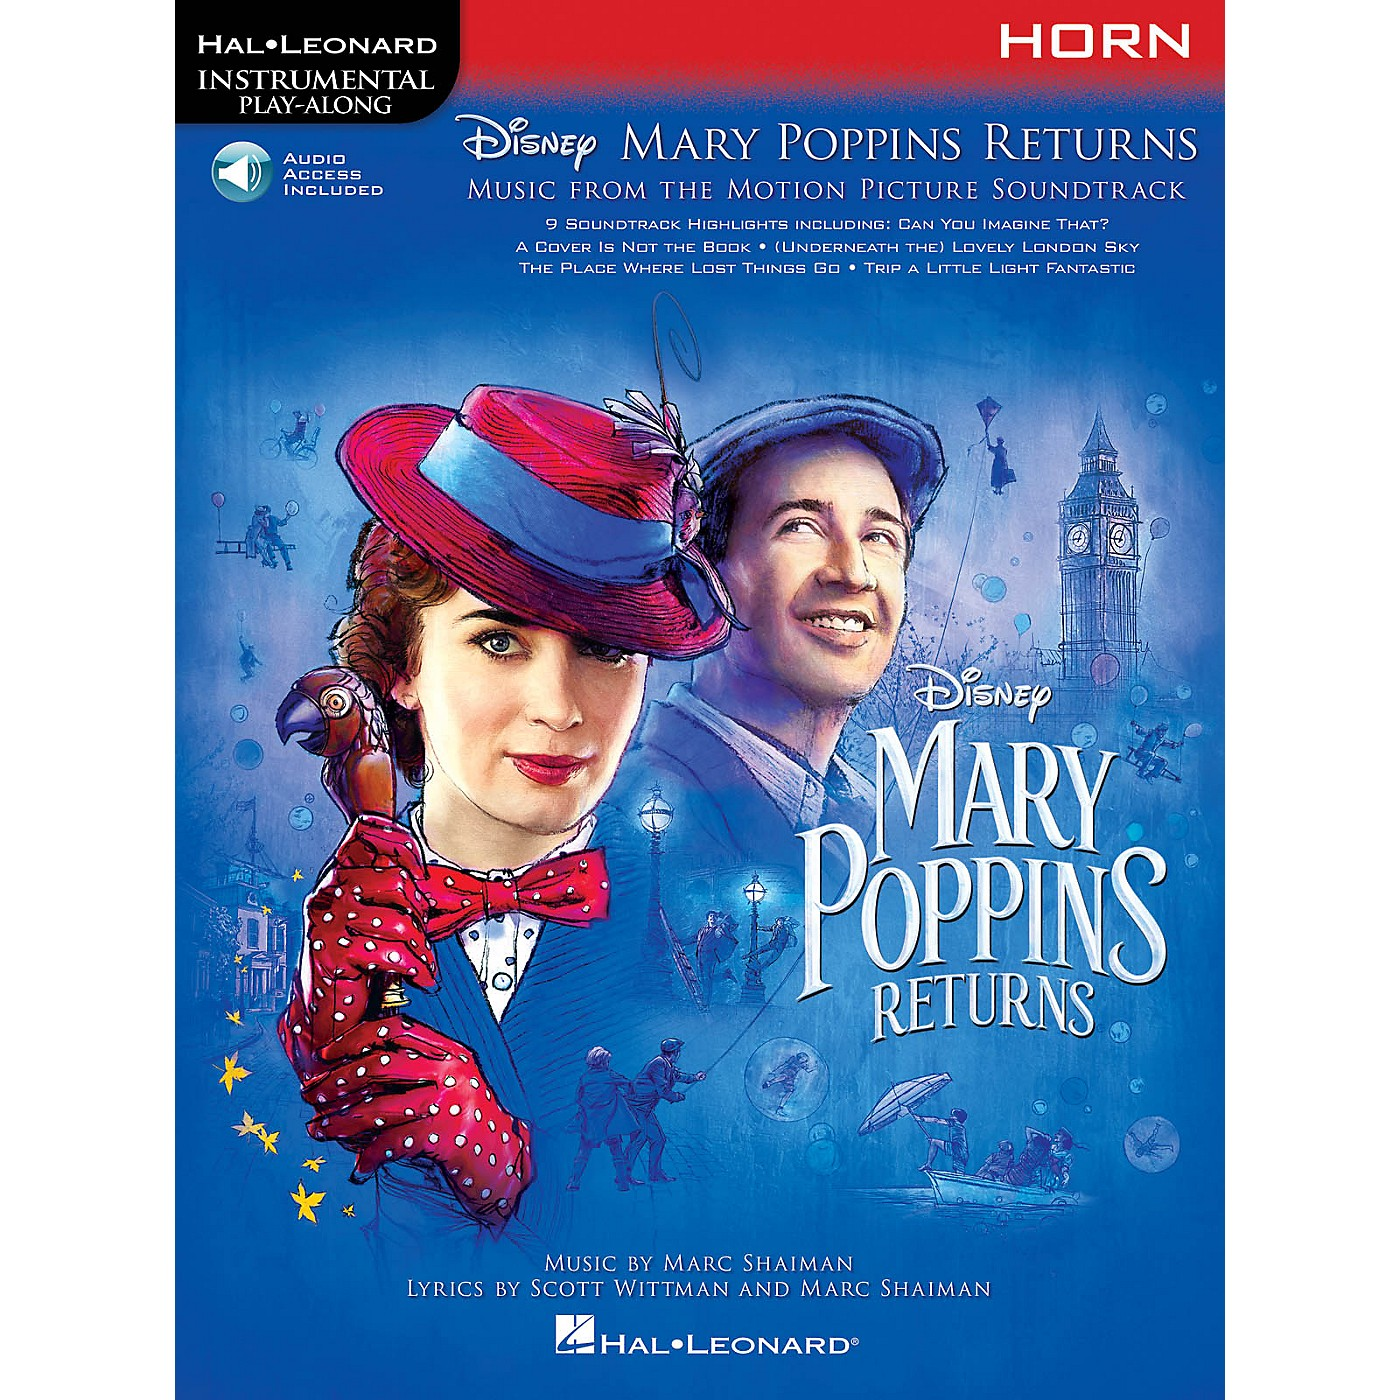 Hal Leonard Mary Poppins Returns for Horn Instrumental Play-Along Series Softcover Audio Online thumbnail